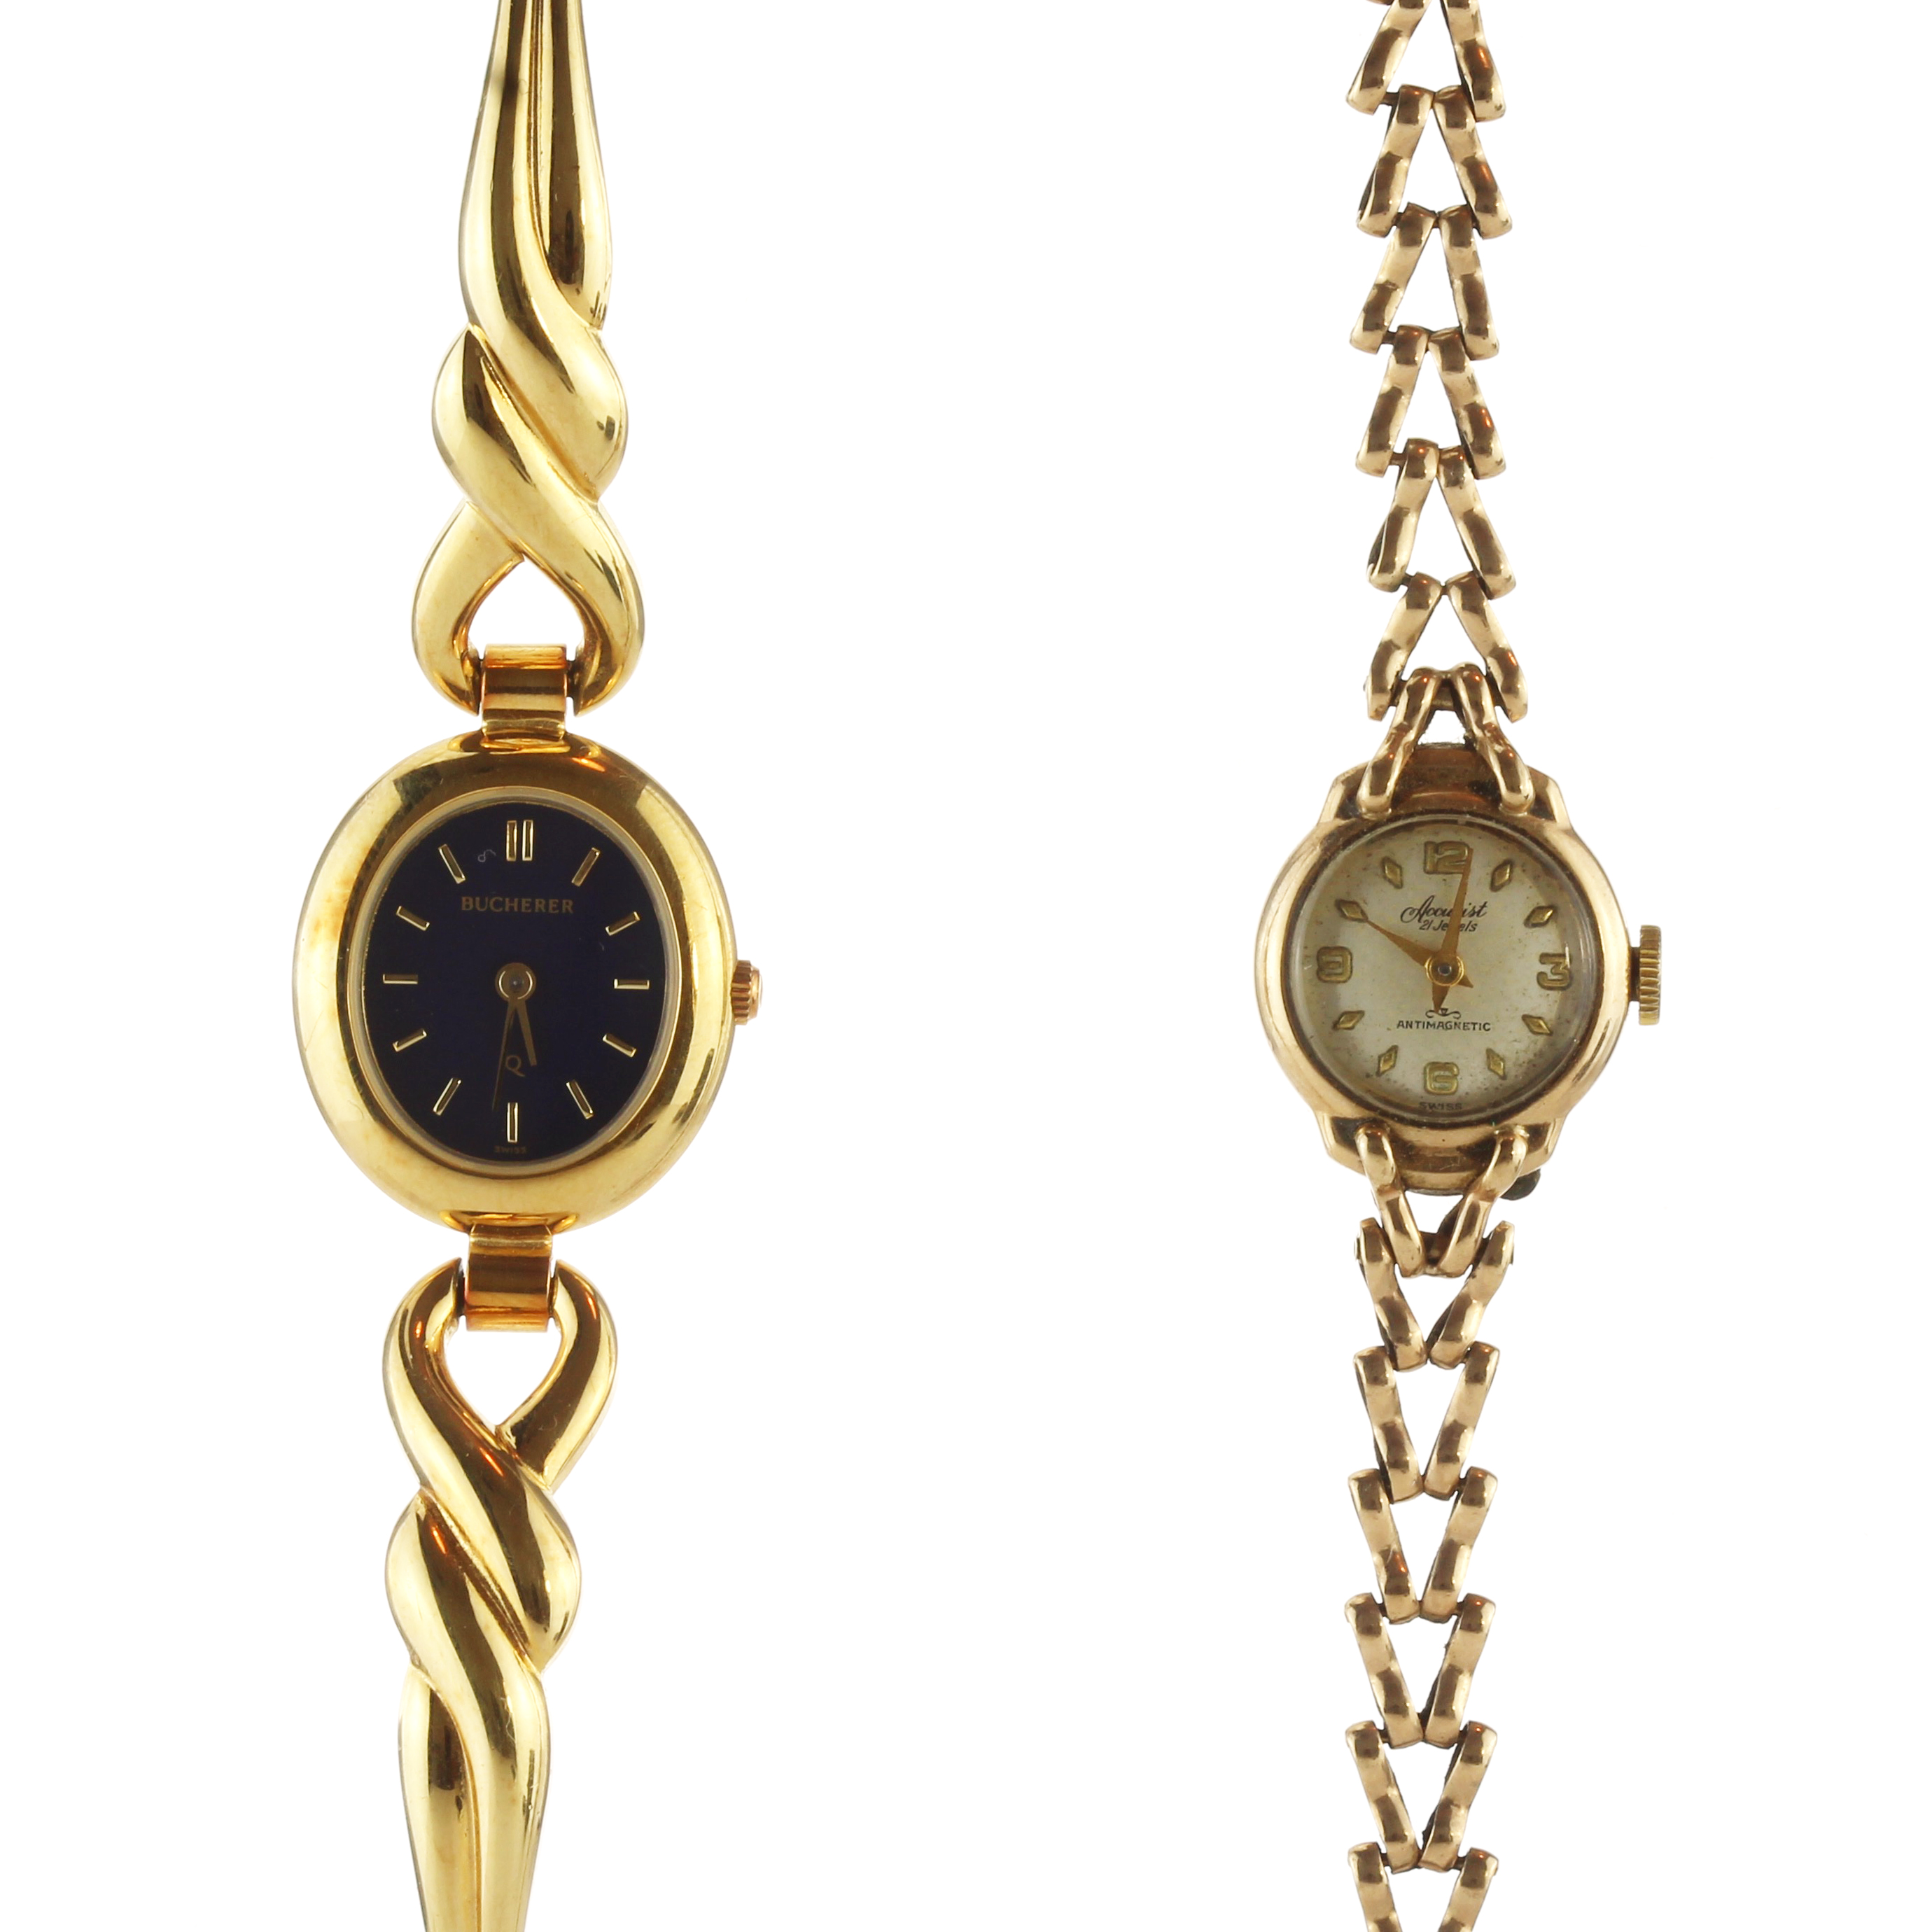 Los 56 - An antique ladies 9ct yellow gold Accurist cocktail watch together with a Bucherer gold plated